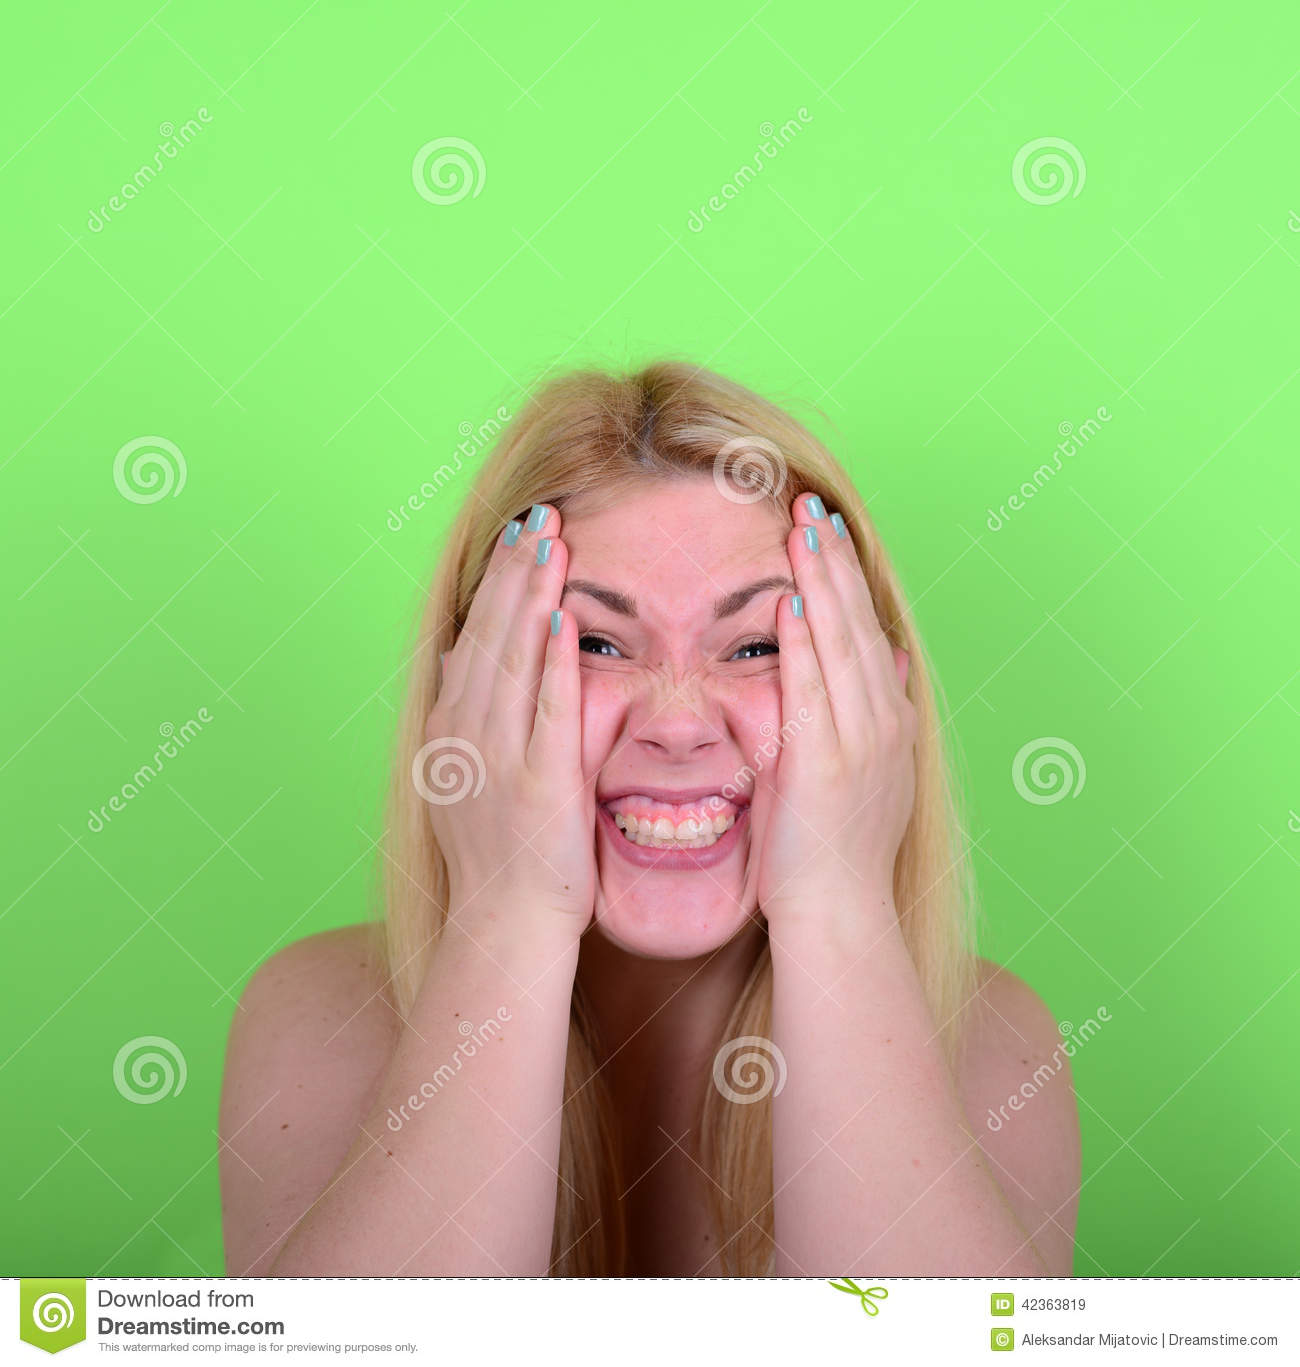 Portrait of girl with funny face against green background